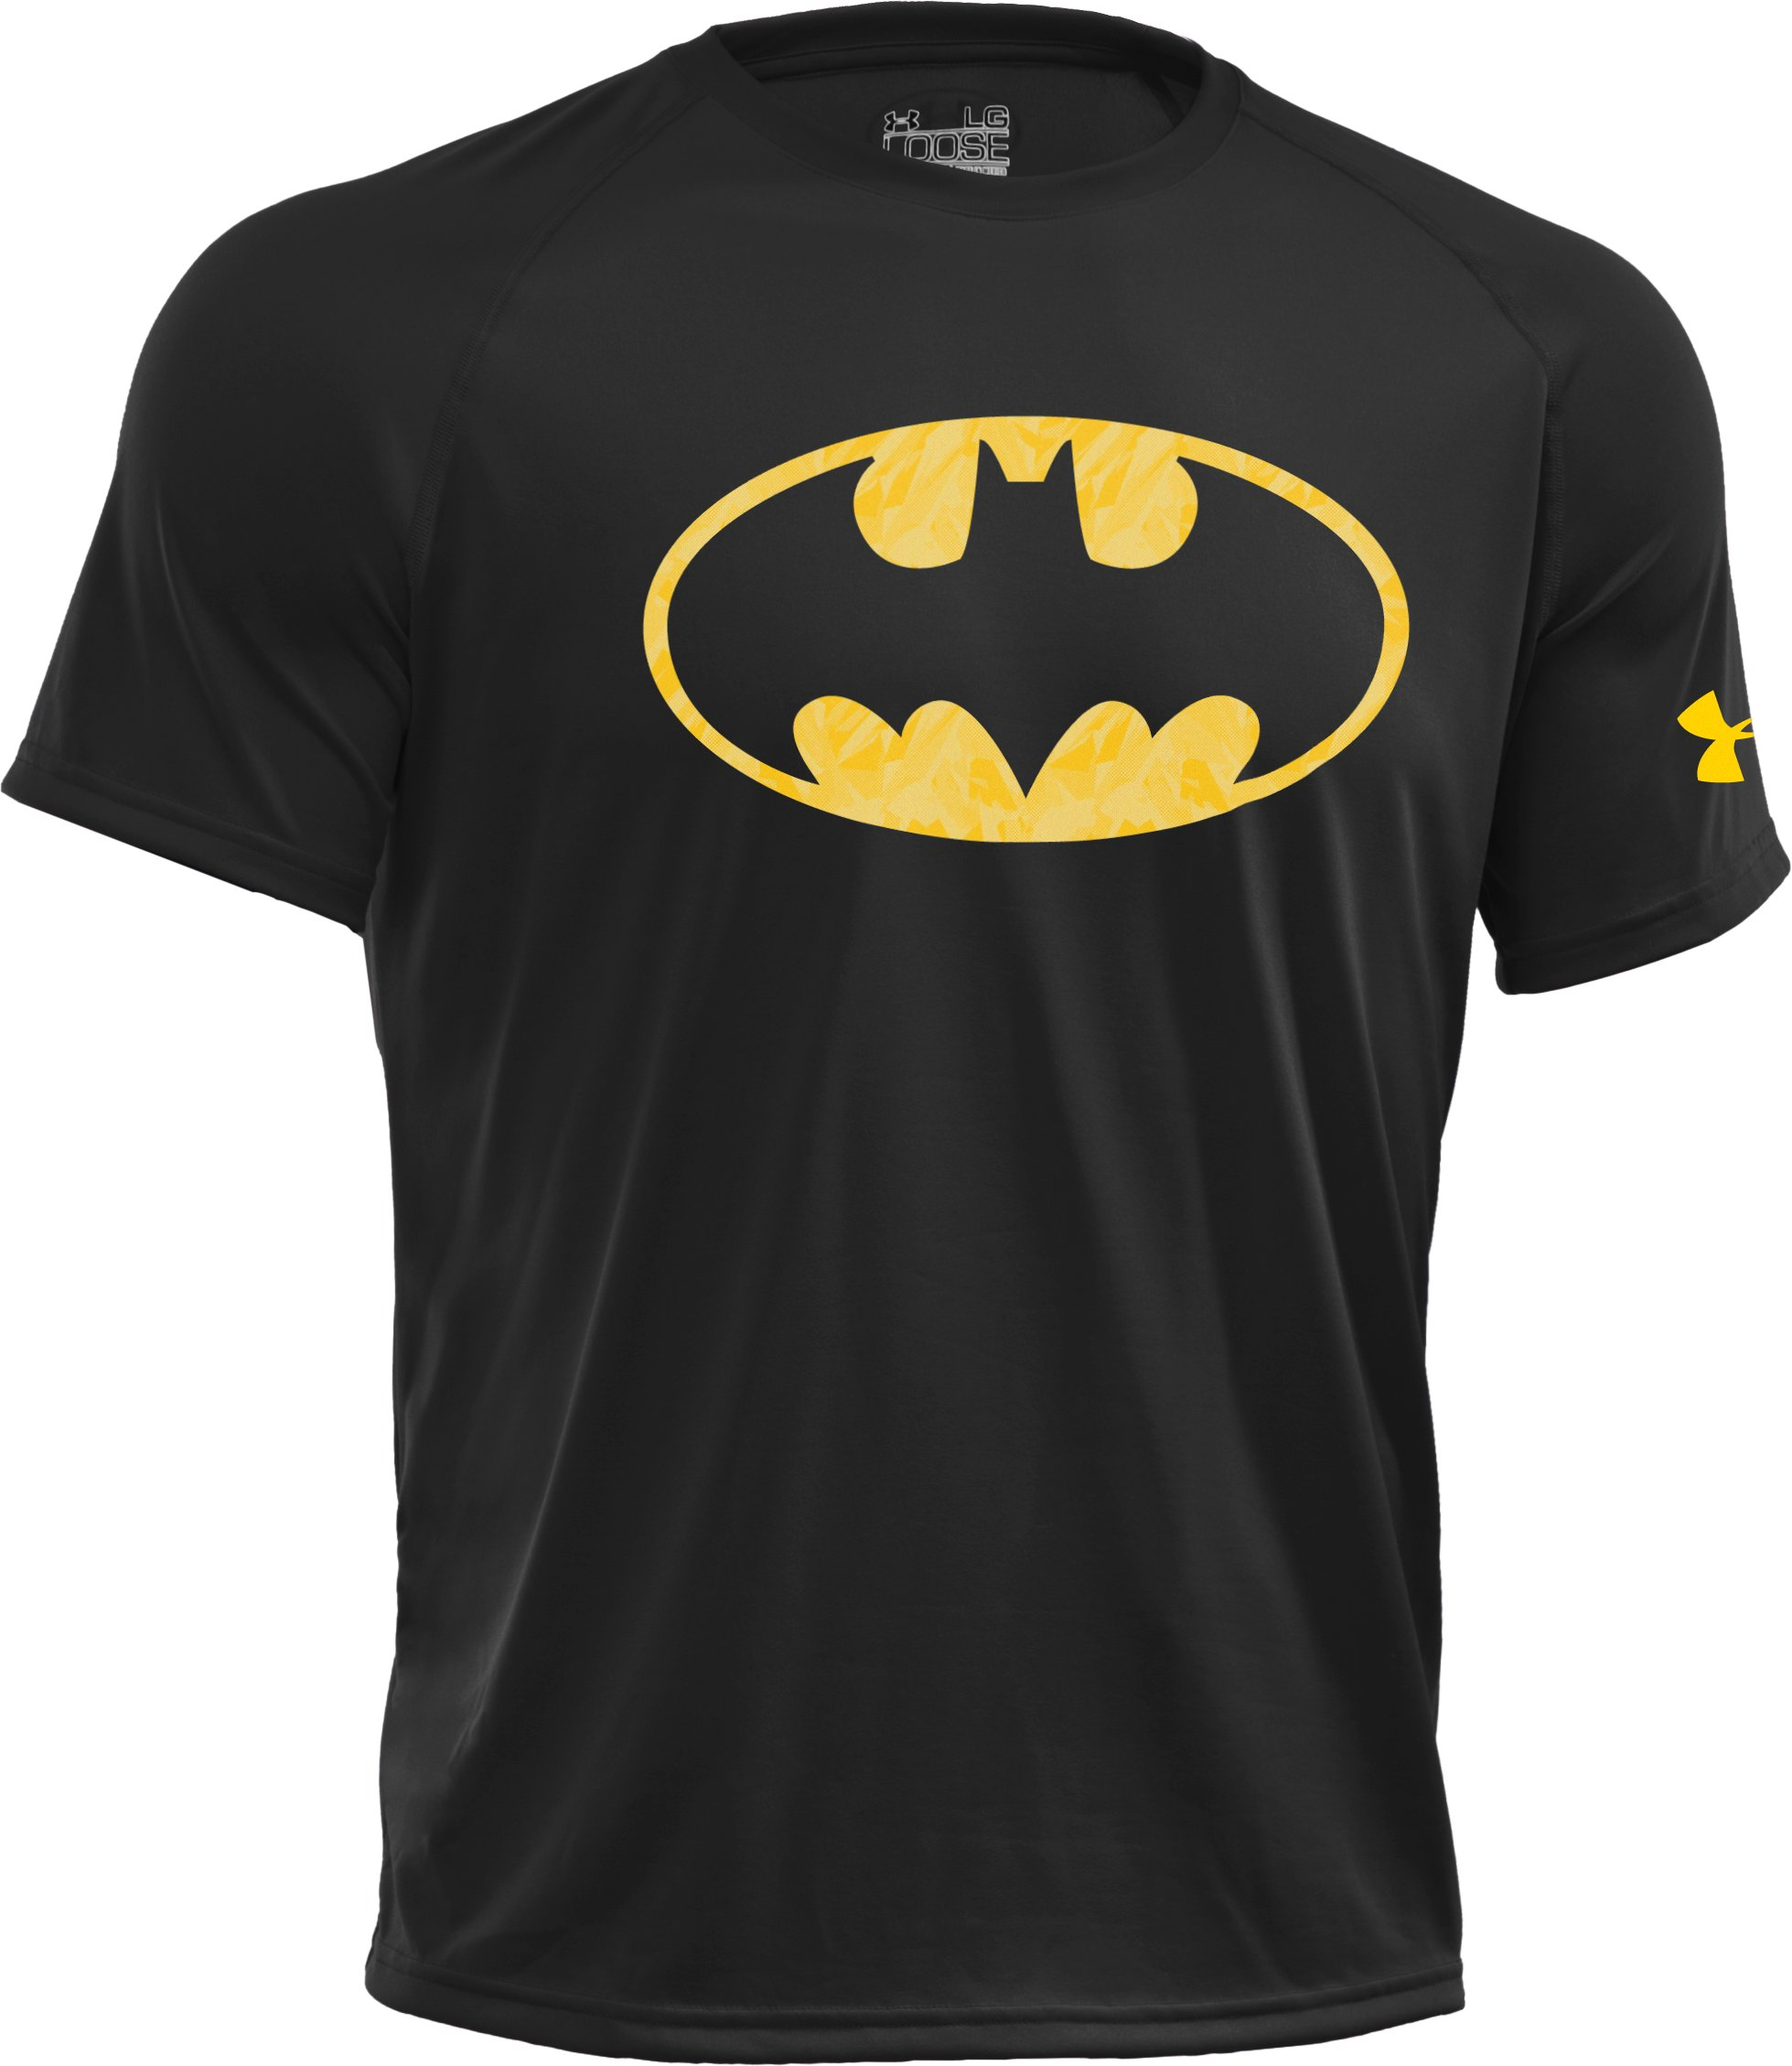 Men's Under Armour® Alter Ego Patterned Batman T-Shirt, Black